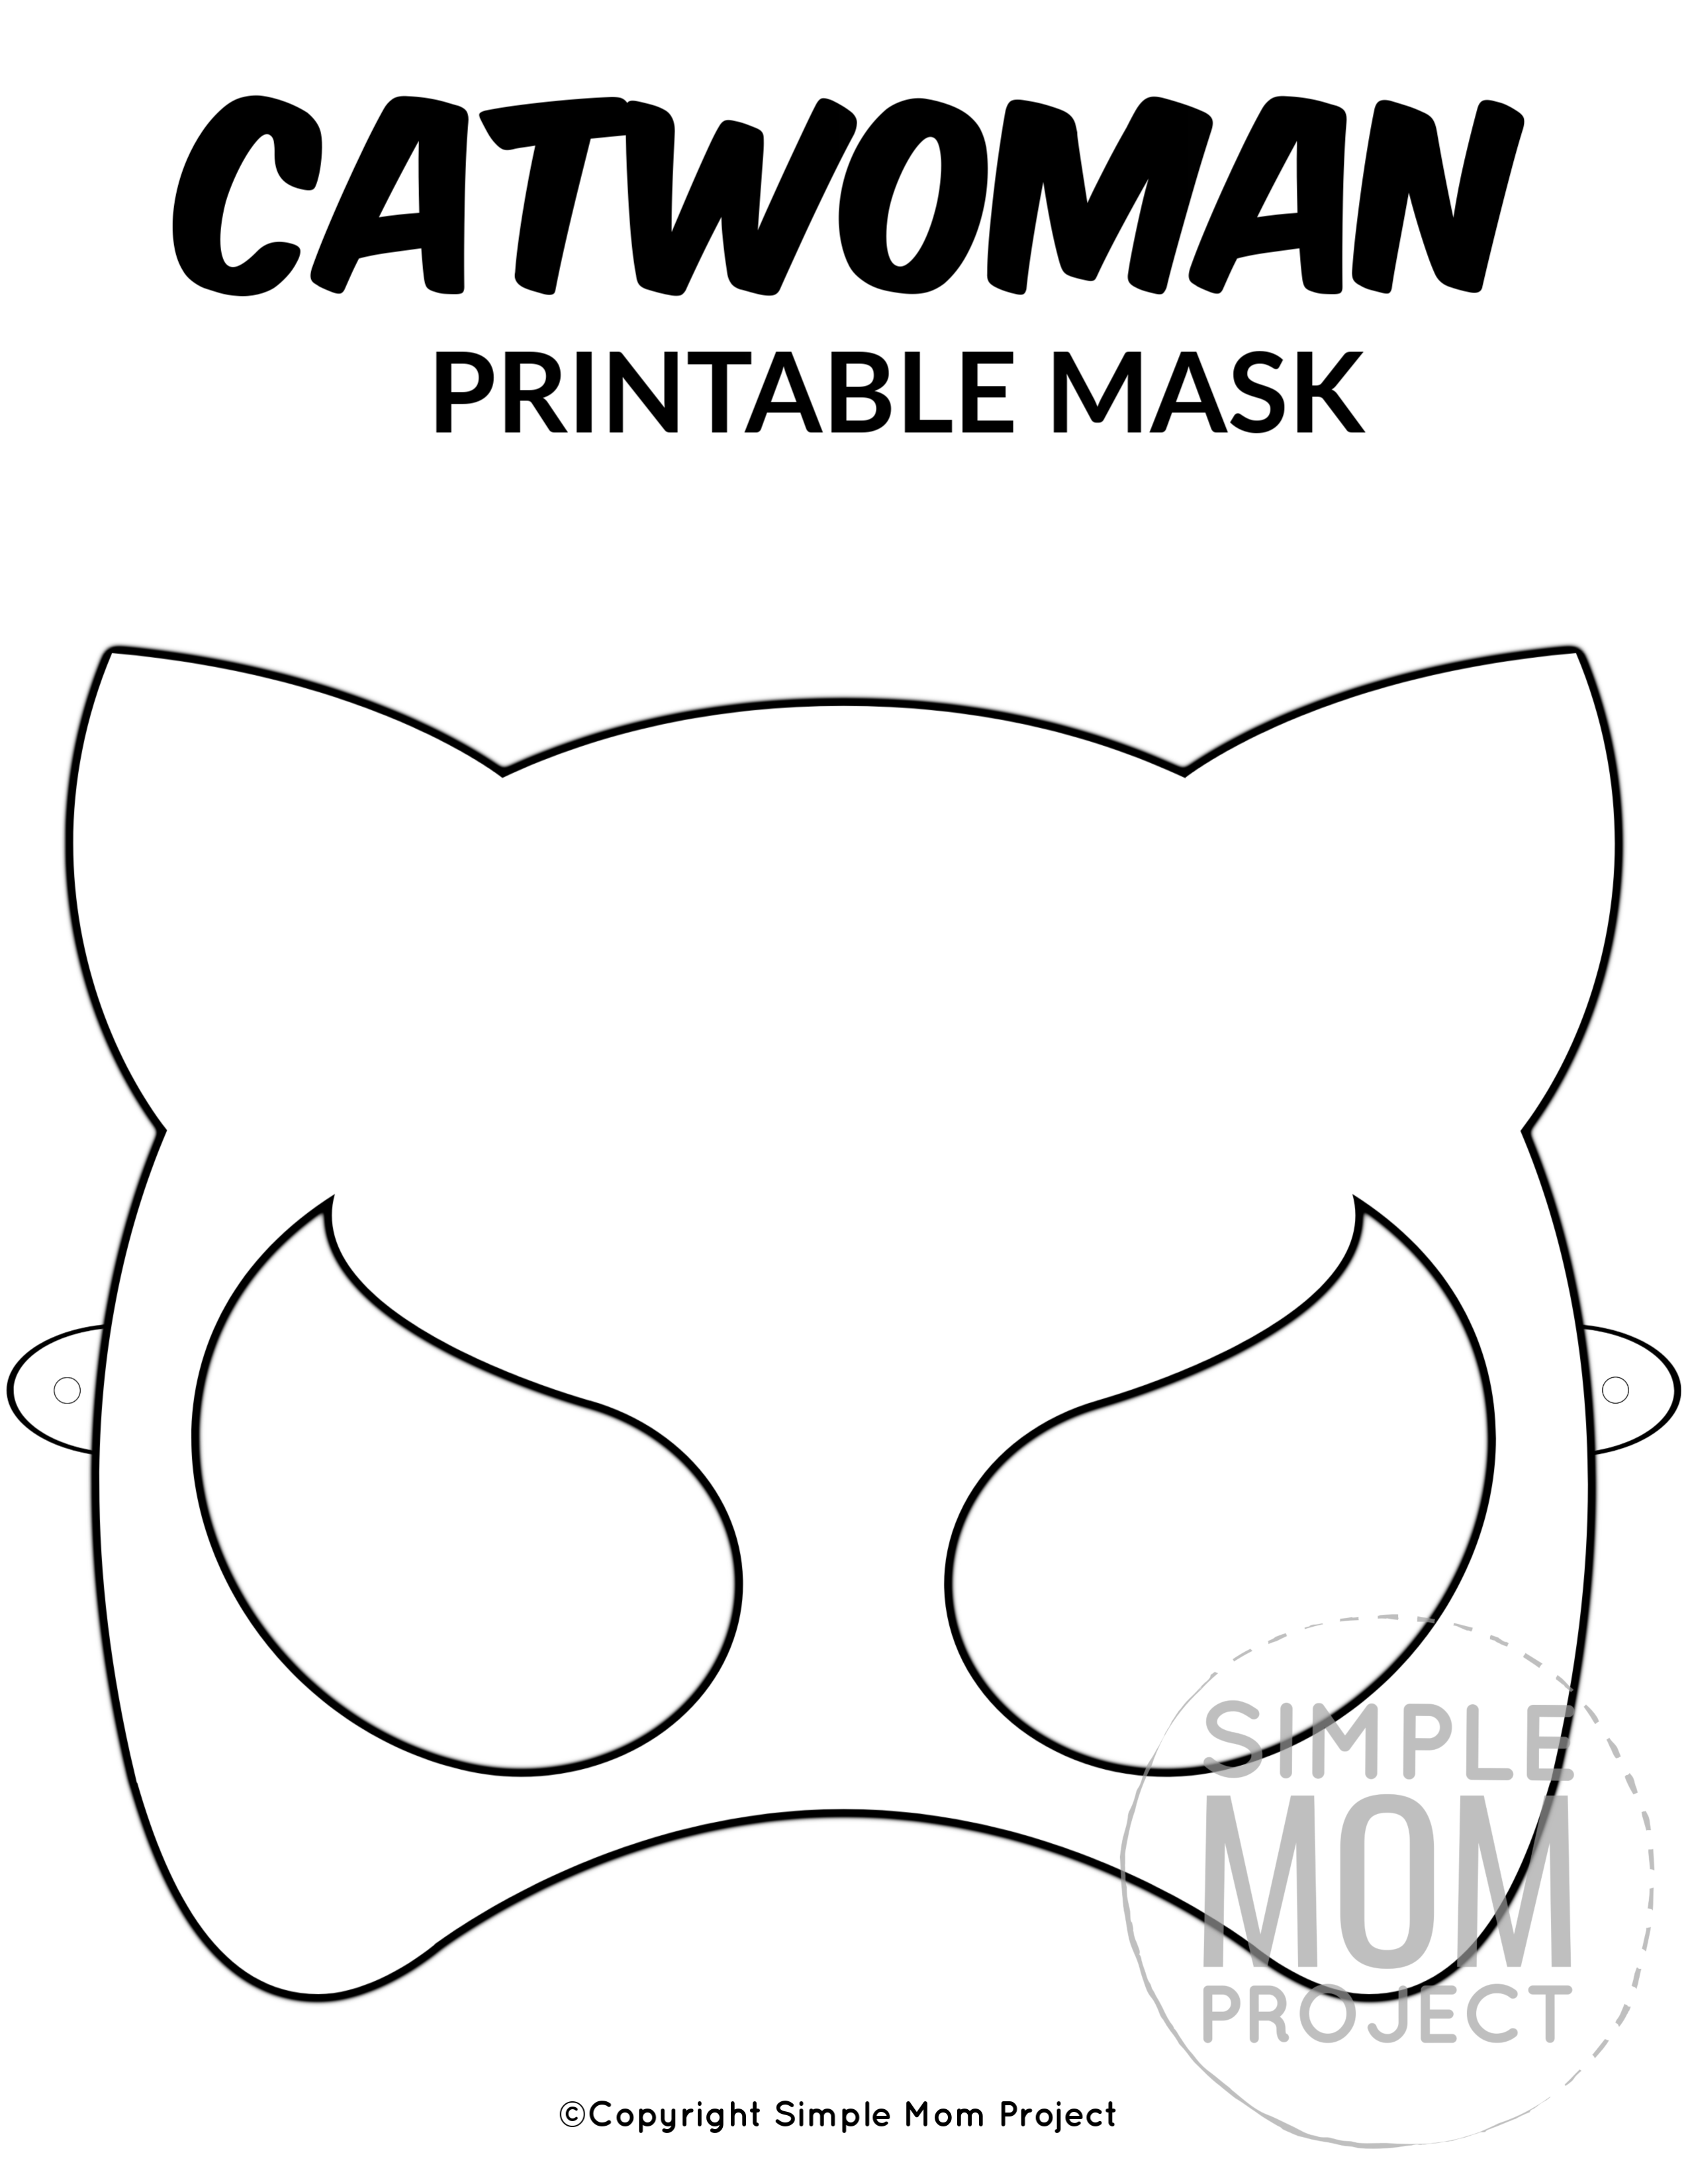 Free Printable Catwoman Mask Template